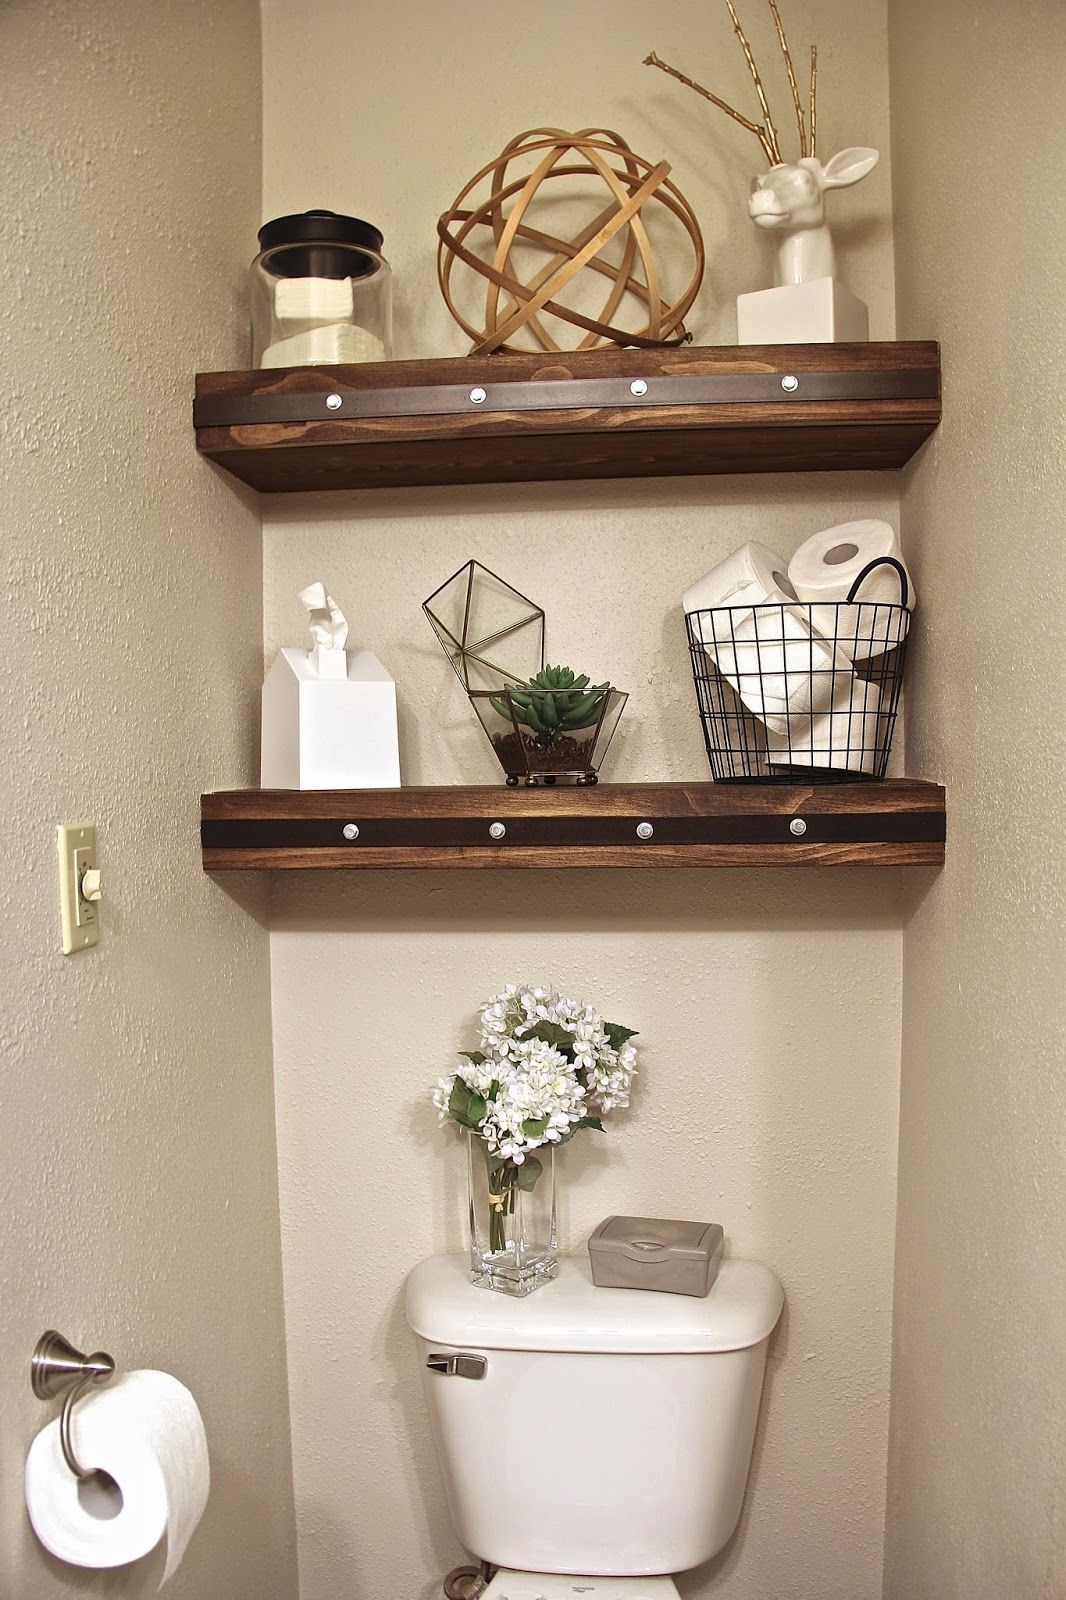 Nifty Storage Over Toilet Storage Made Wood Decorative Storage Over Toilet Storage Made Wood Decorative Over Toilet Storage Cabinet Over Toilet Storage Walmart houzz-03 Over The Toilet Storage